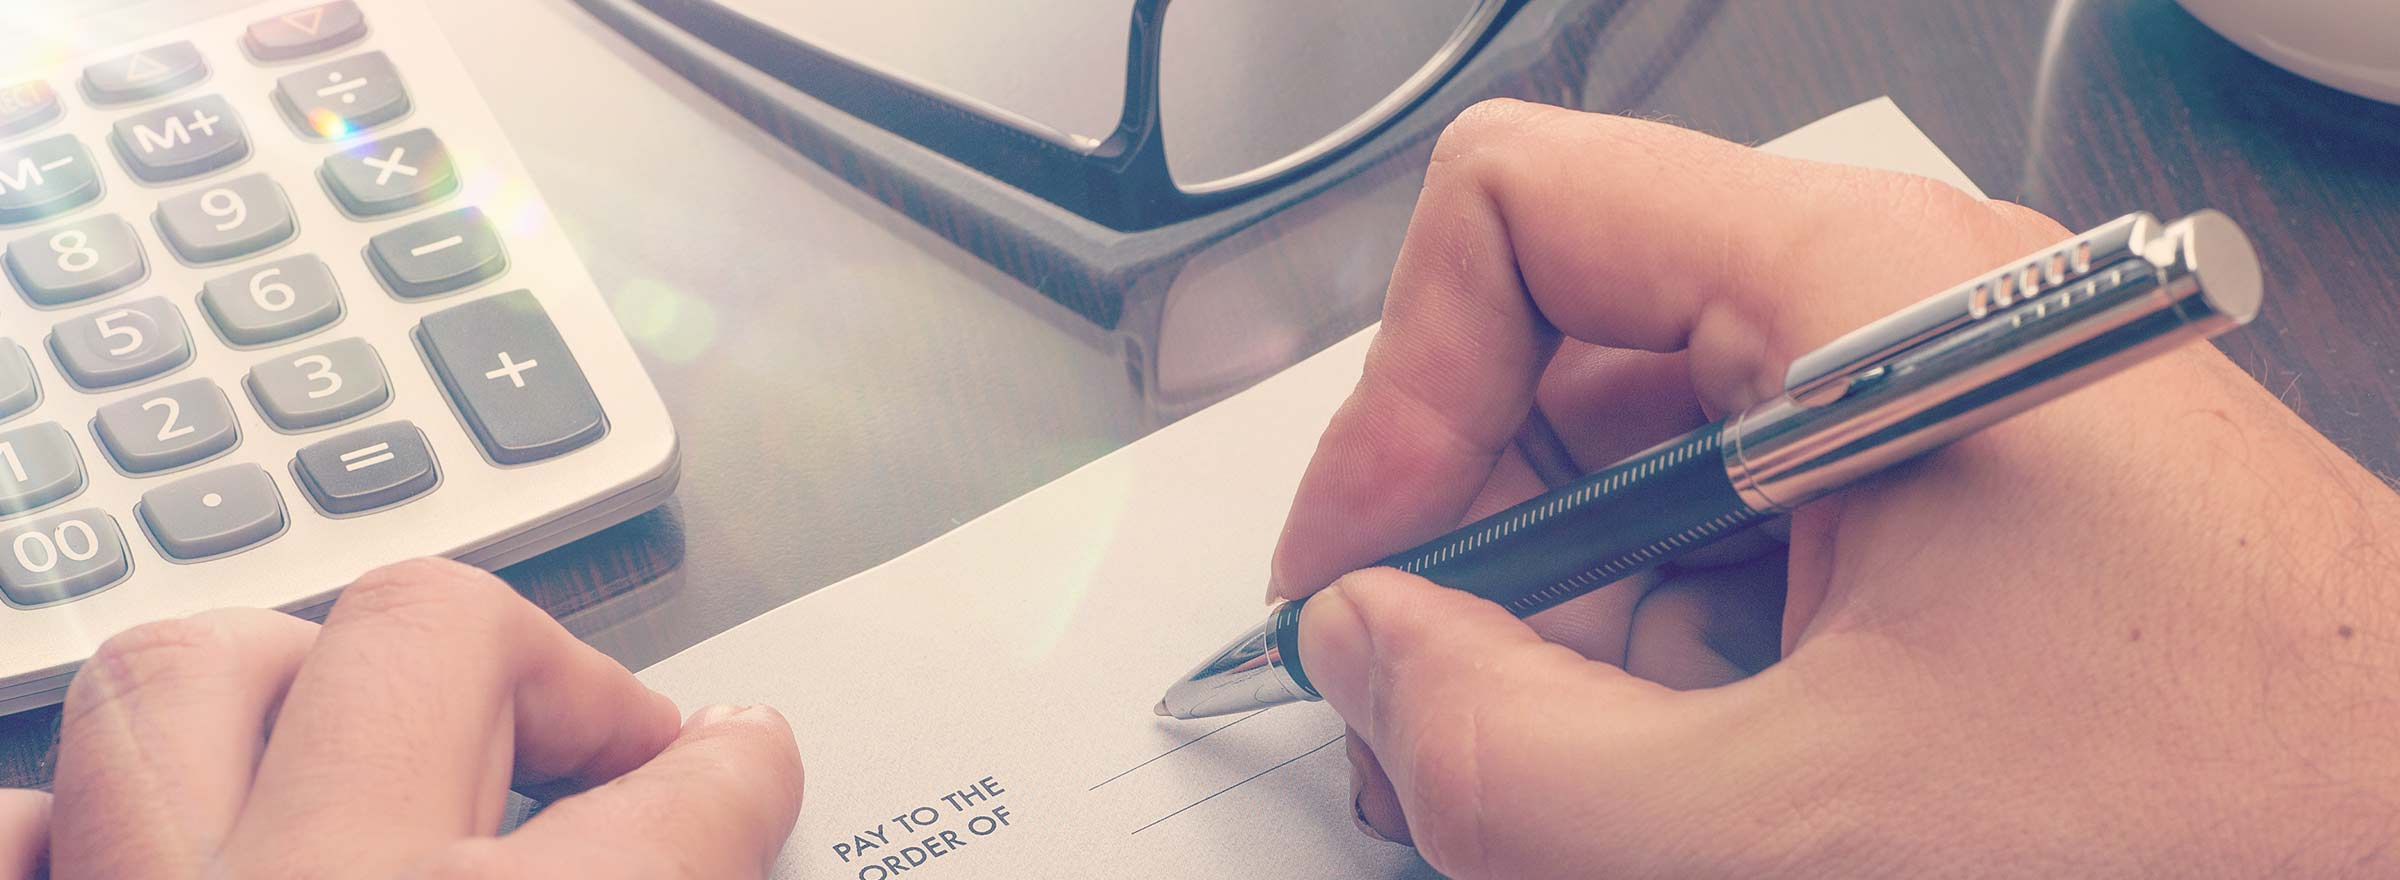 nonprofit staff member writing out a check by hand next to a calculator, representing the need for using adp to process payroll